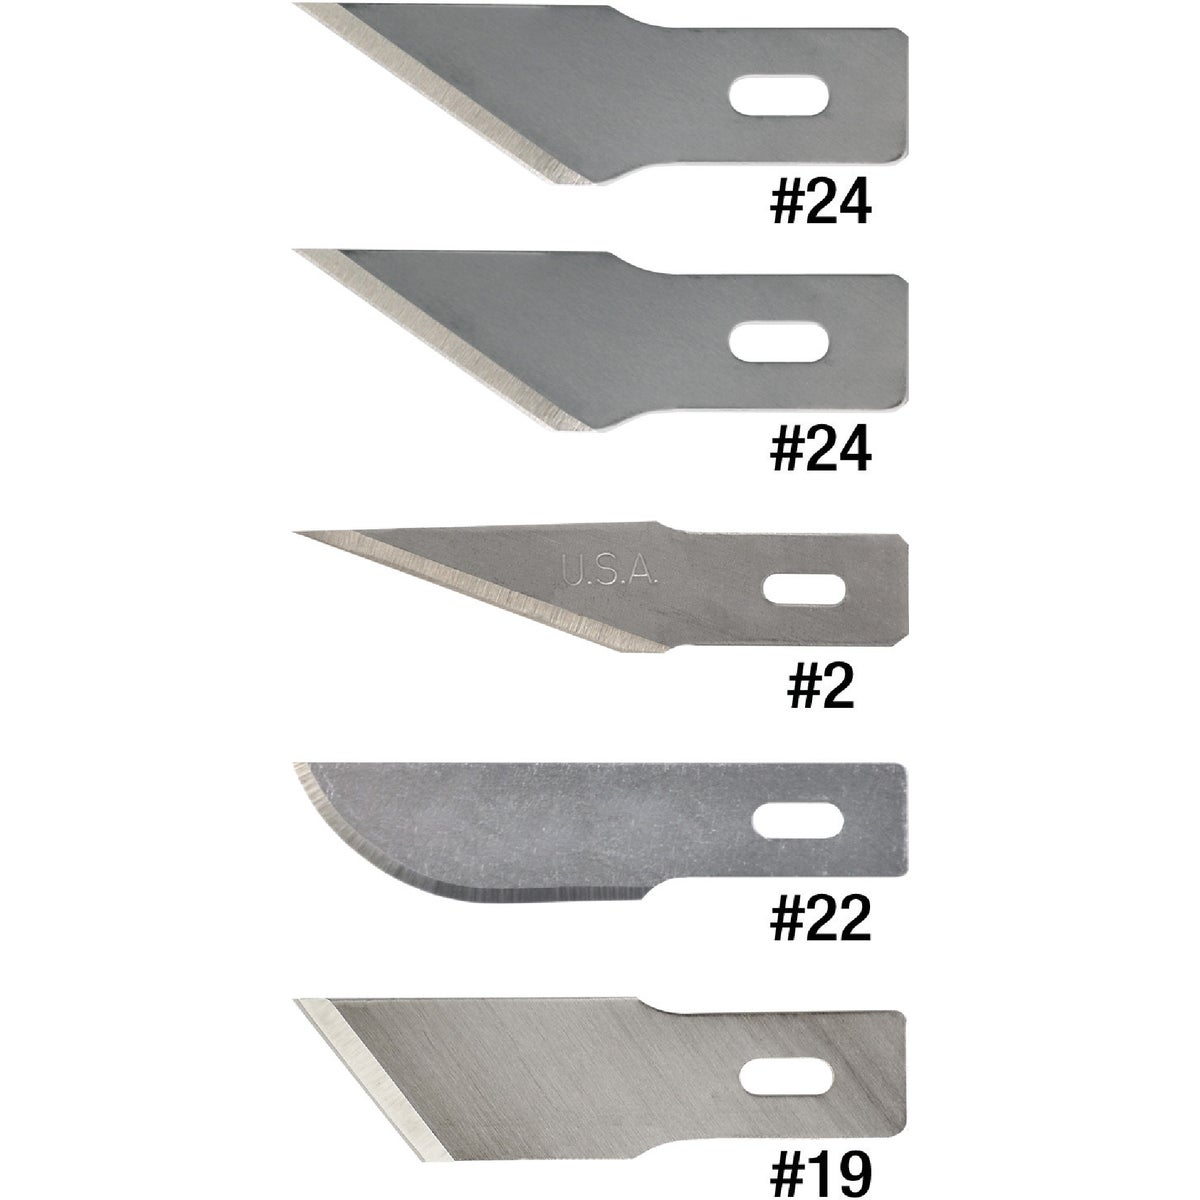 HOBBY BLADE ASSORTMENT - 01-215 by Techni Edge Mfg Corp